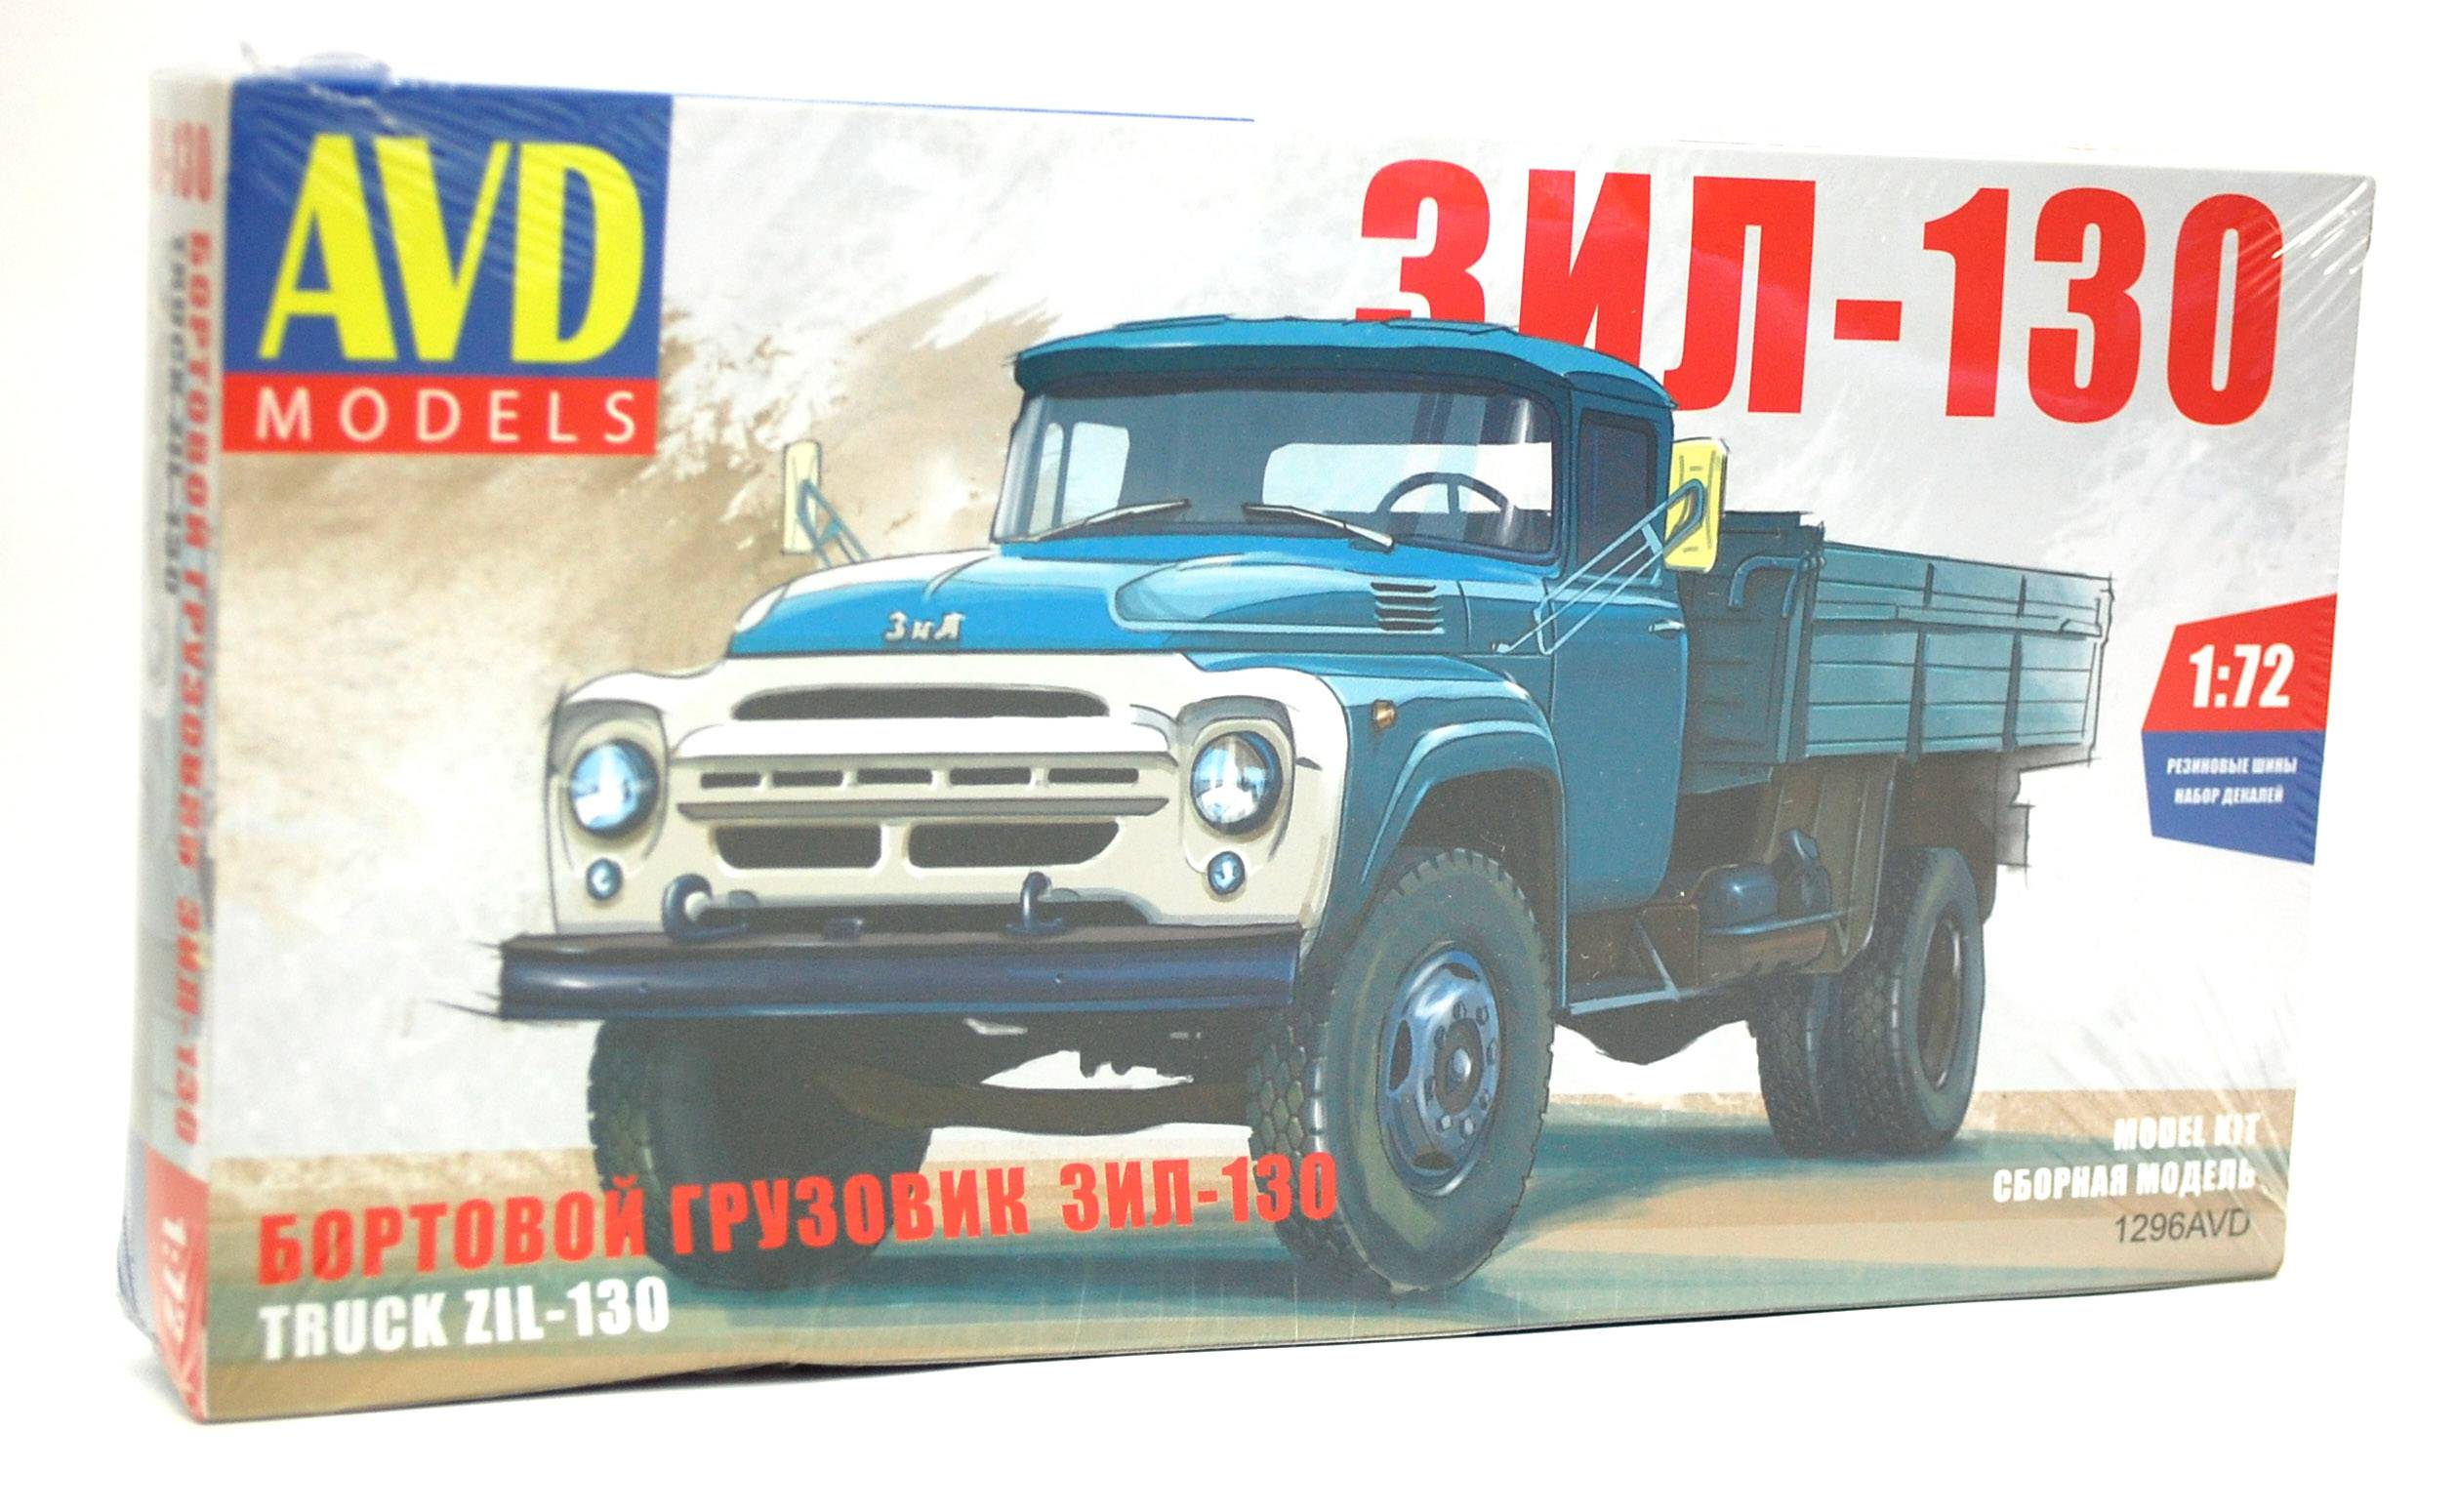 Zil-130 - model AVD KIT 1:72